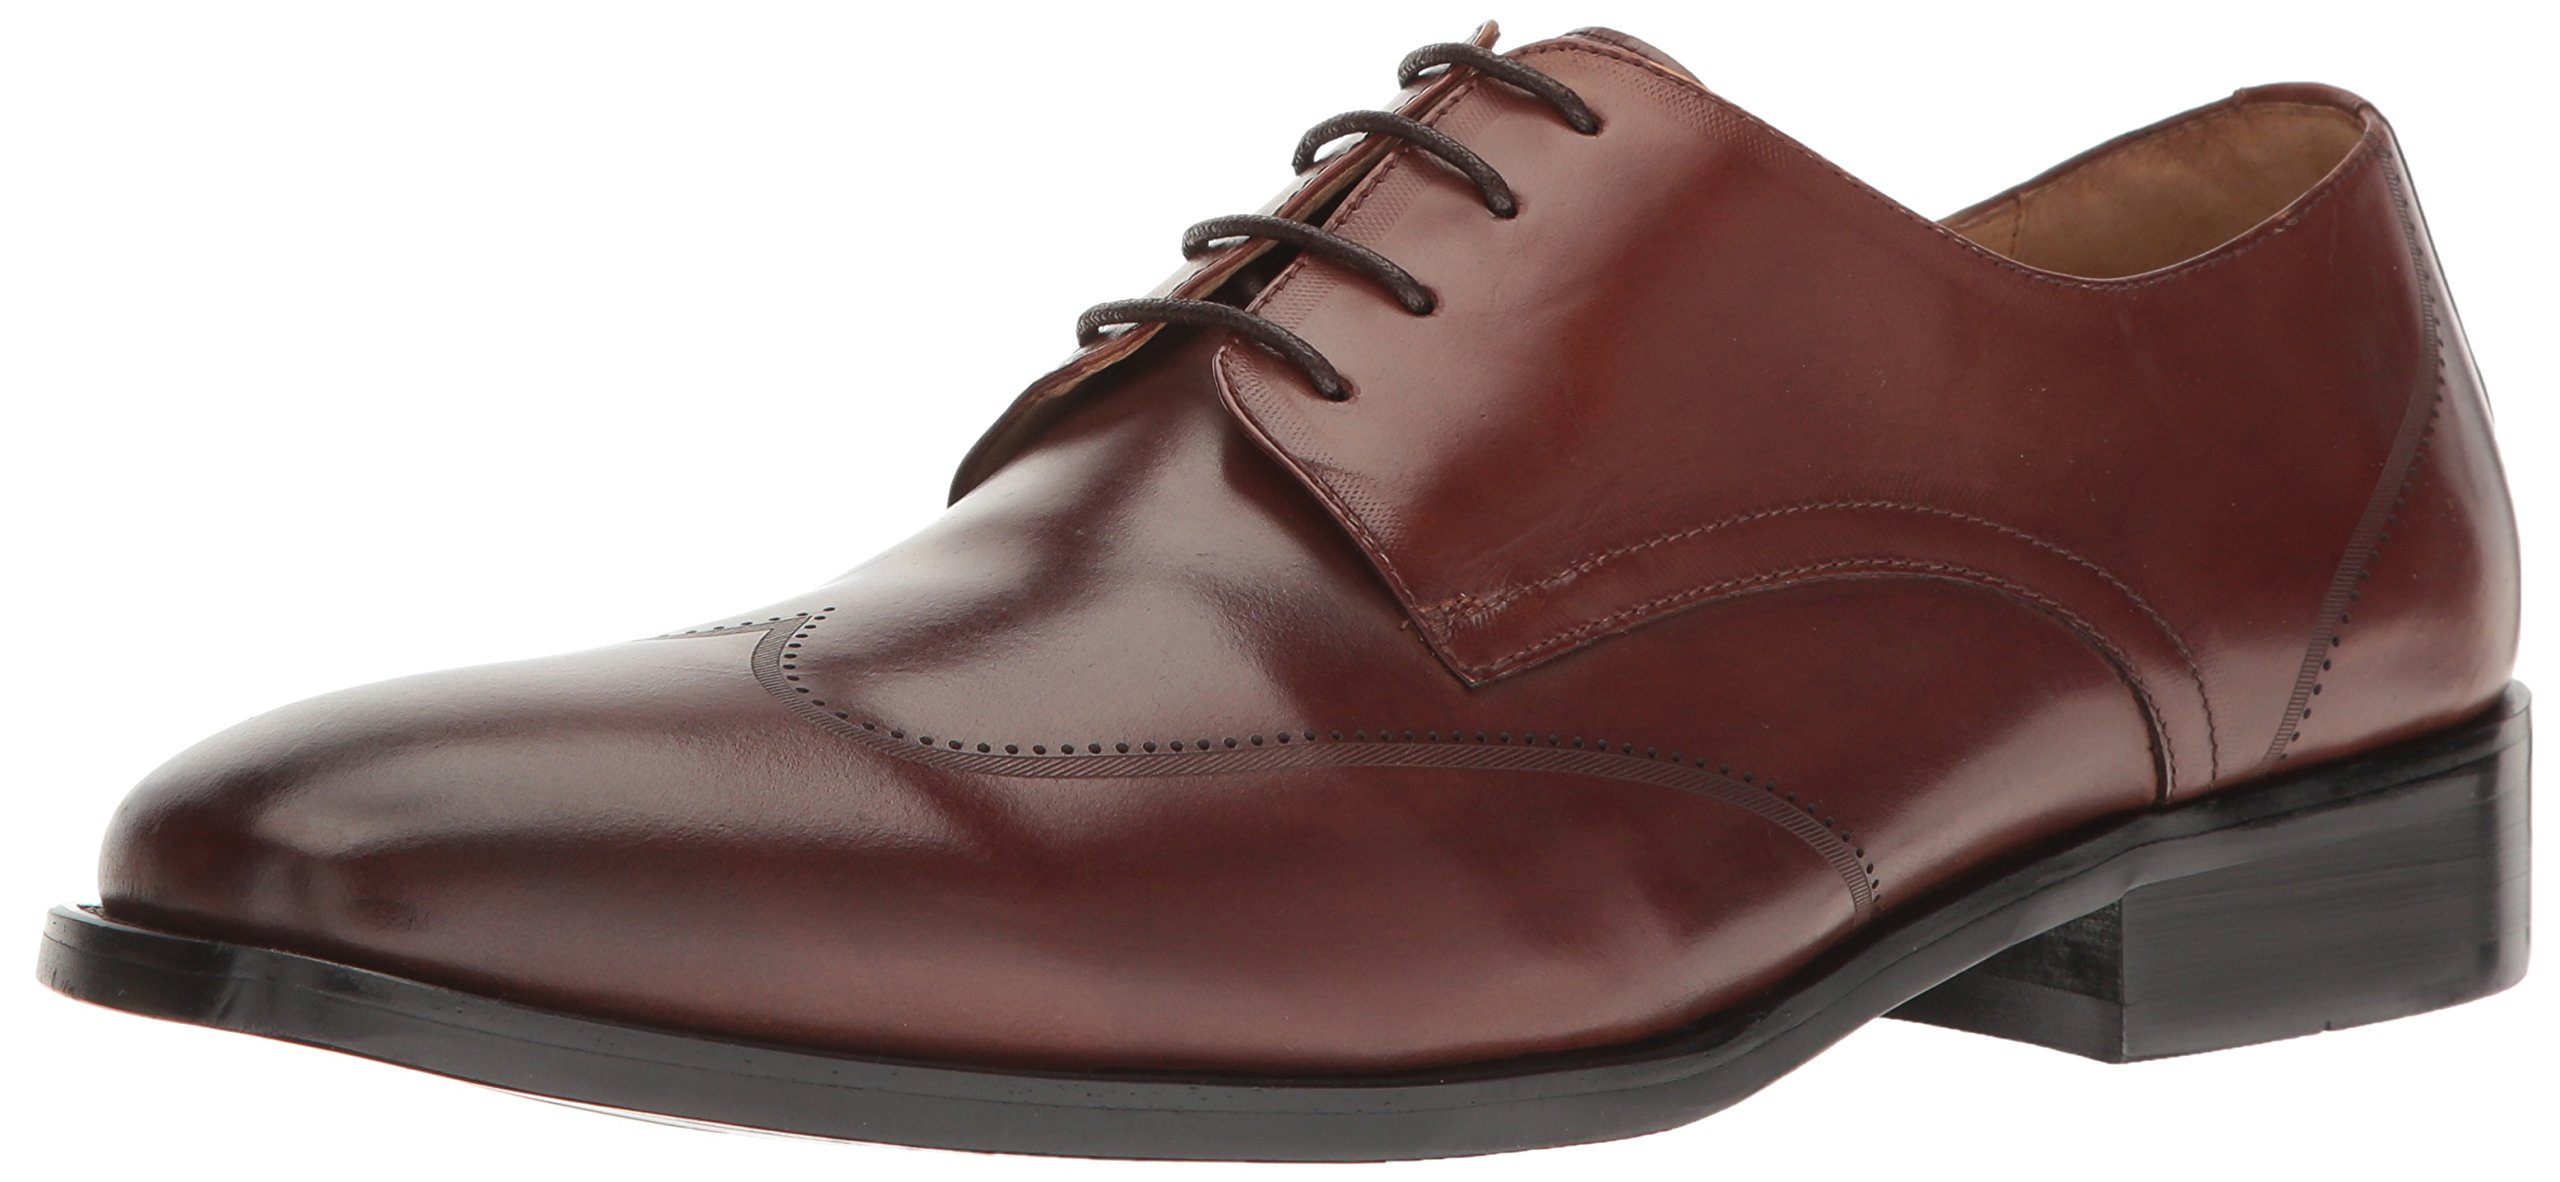 Kenneth Cole New York Men's Leisure-wear Oxford, Cognac, 10.5 M US by Kenneth Cole New York (Image #1)